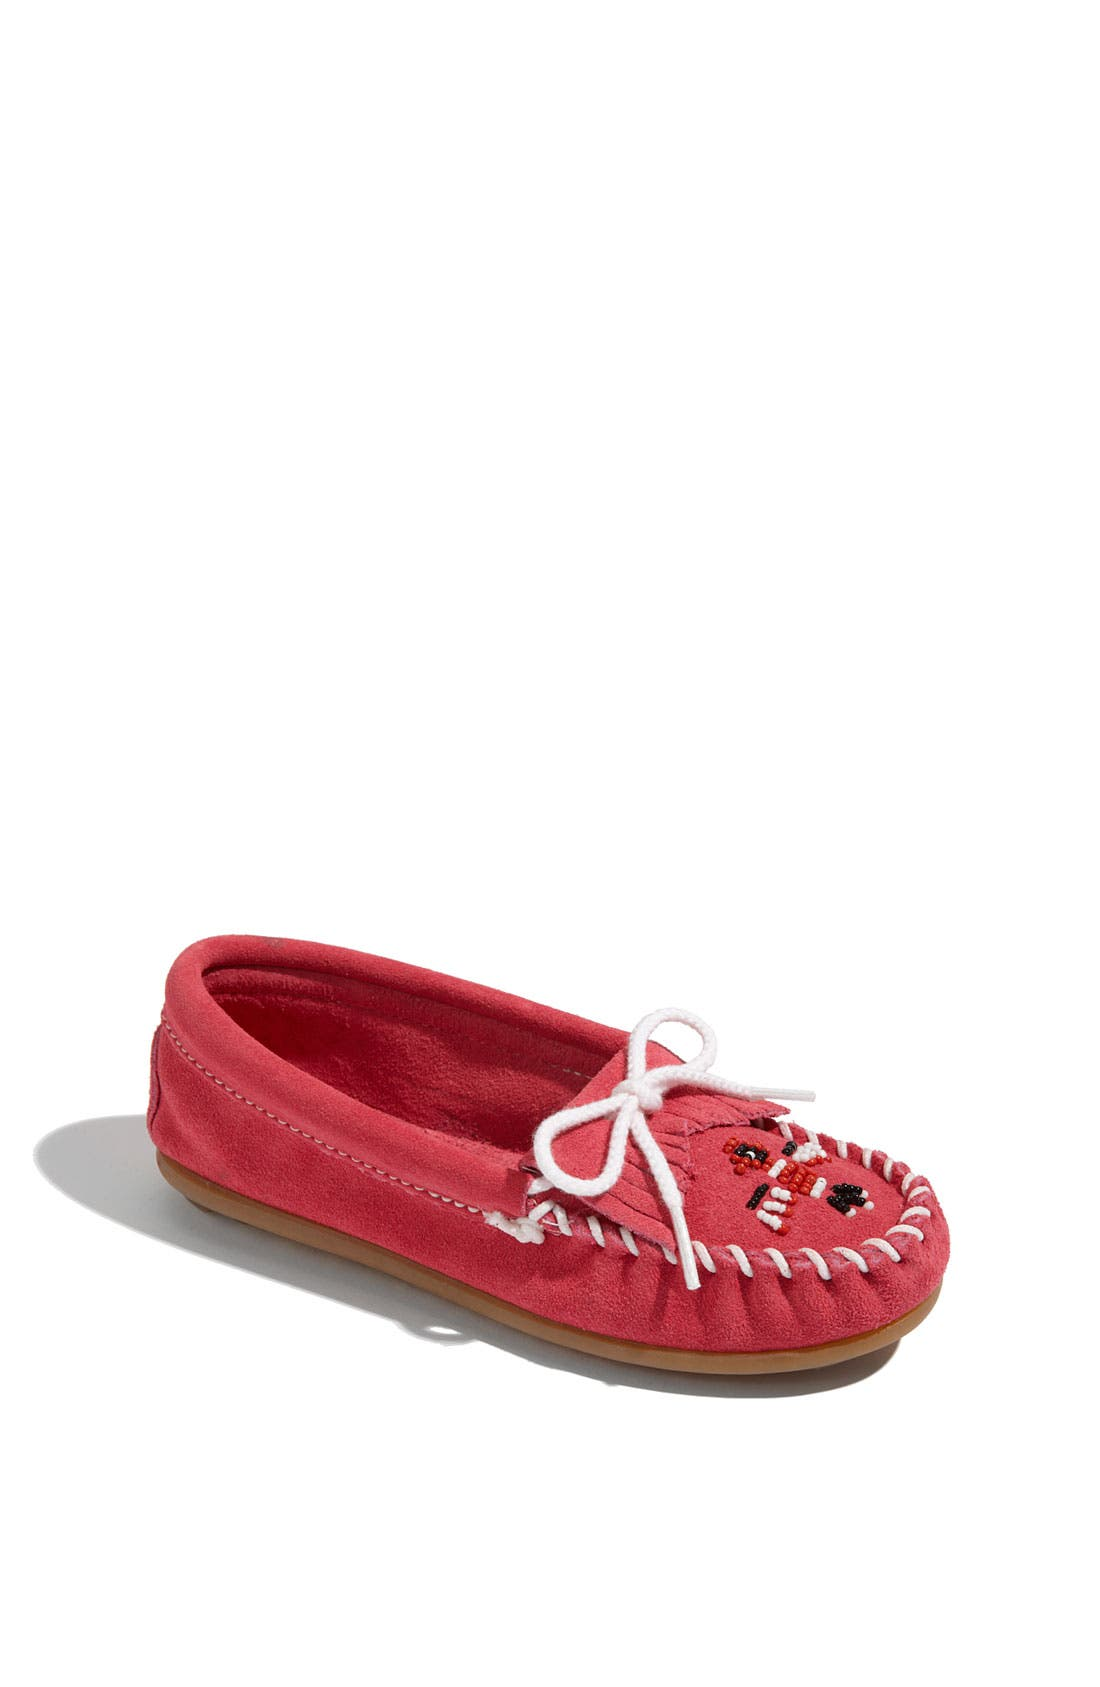 Alternate Image 1 Selected - Minnetonka 'Thunderbird' Moccasin (Toddler, Little Kid & Big Kid)